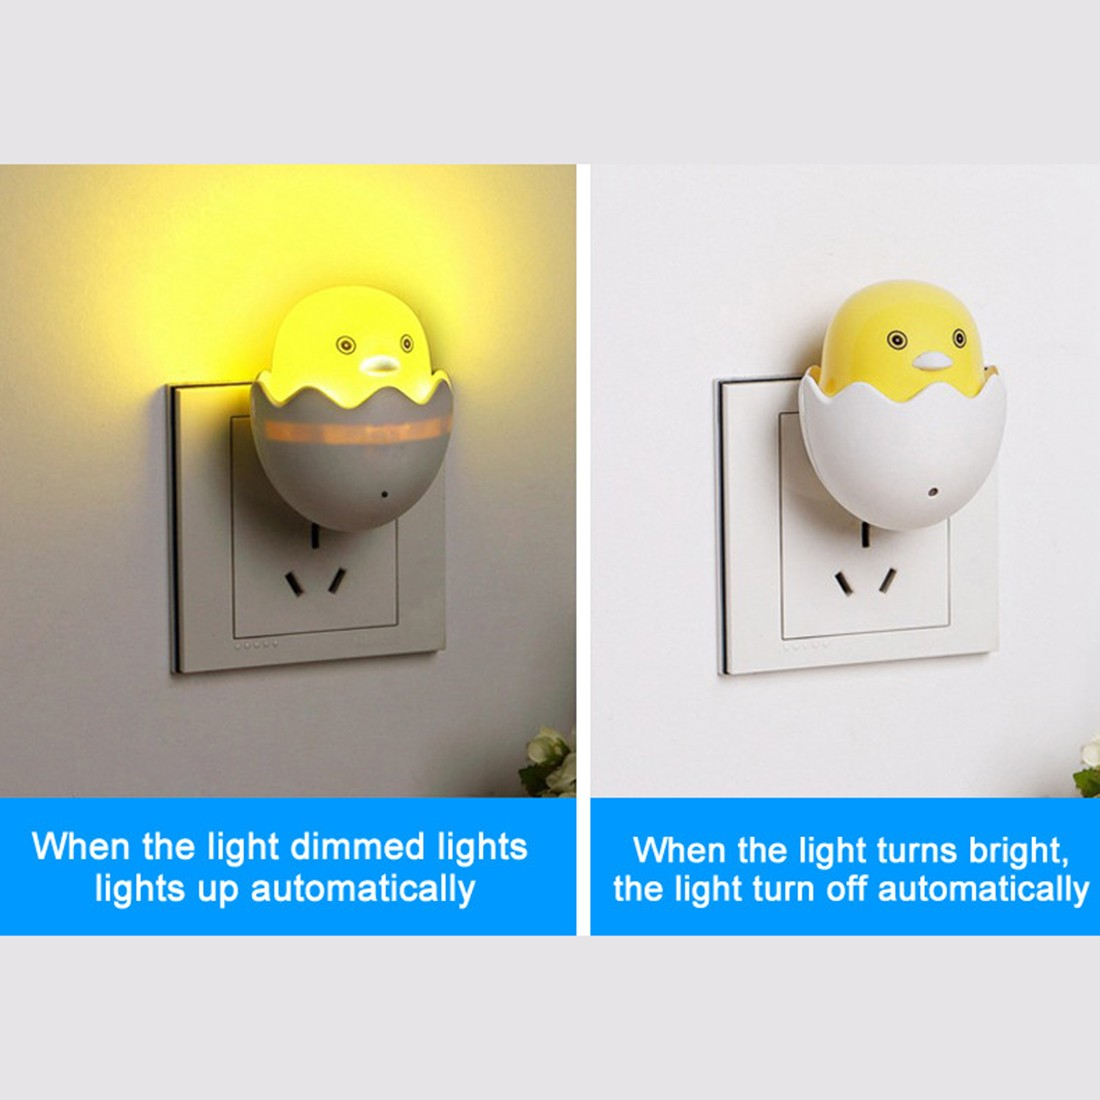 New 1pc EU Plug Wall Socket Lamps LED Night Light AC 220V Light Control Sensor Yellow Duck Bedroom Lamp Gift For Children Cute